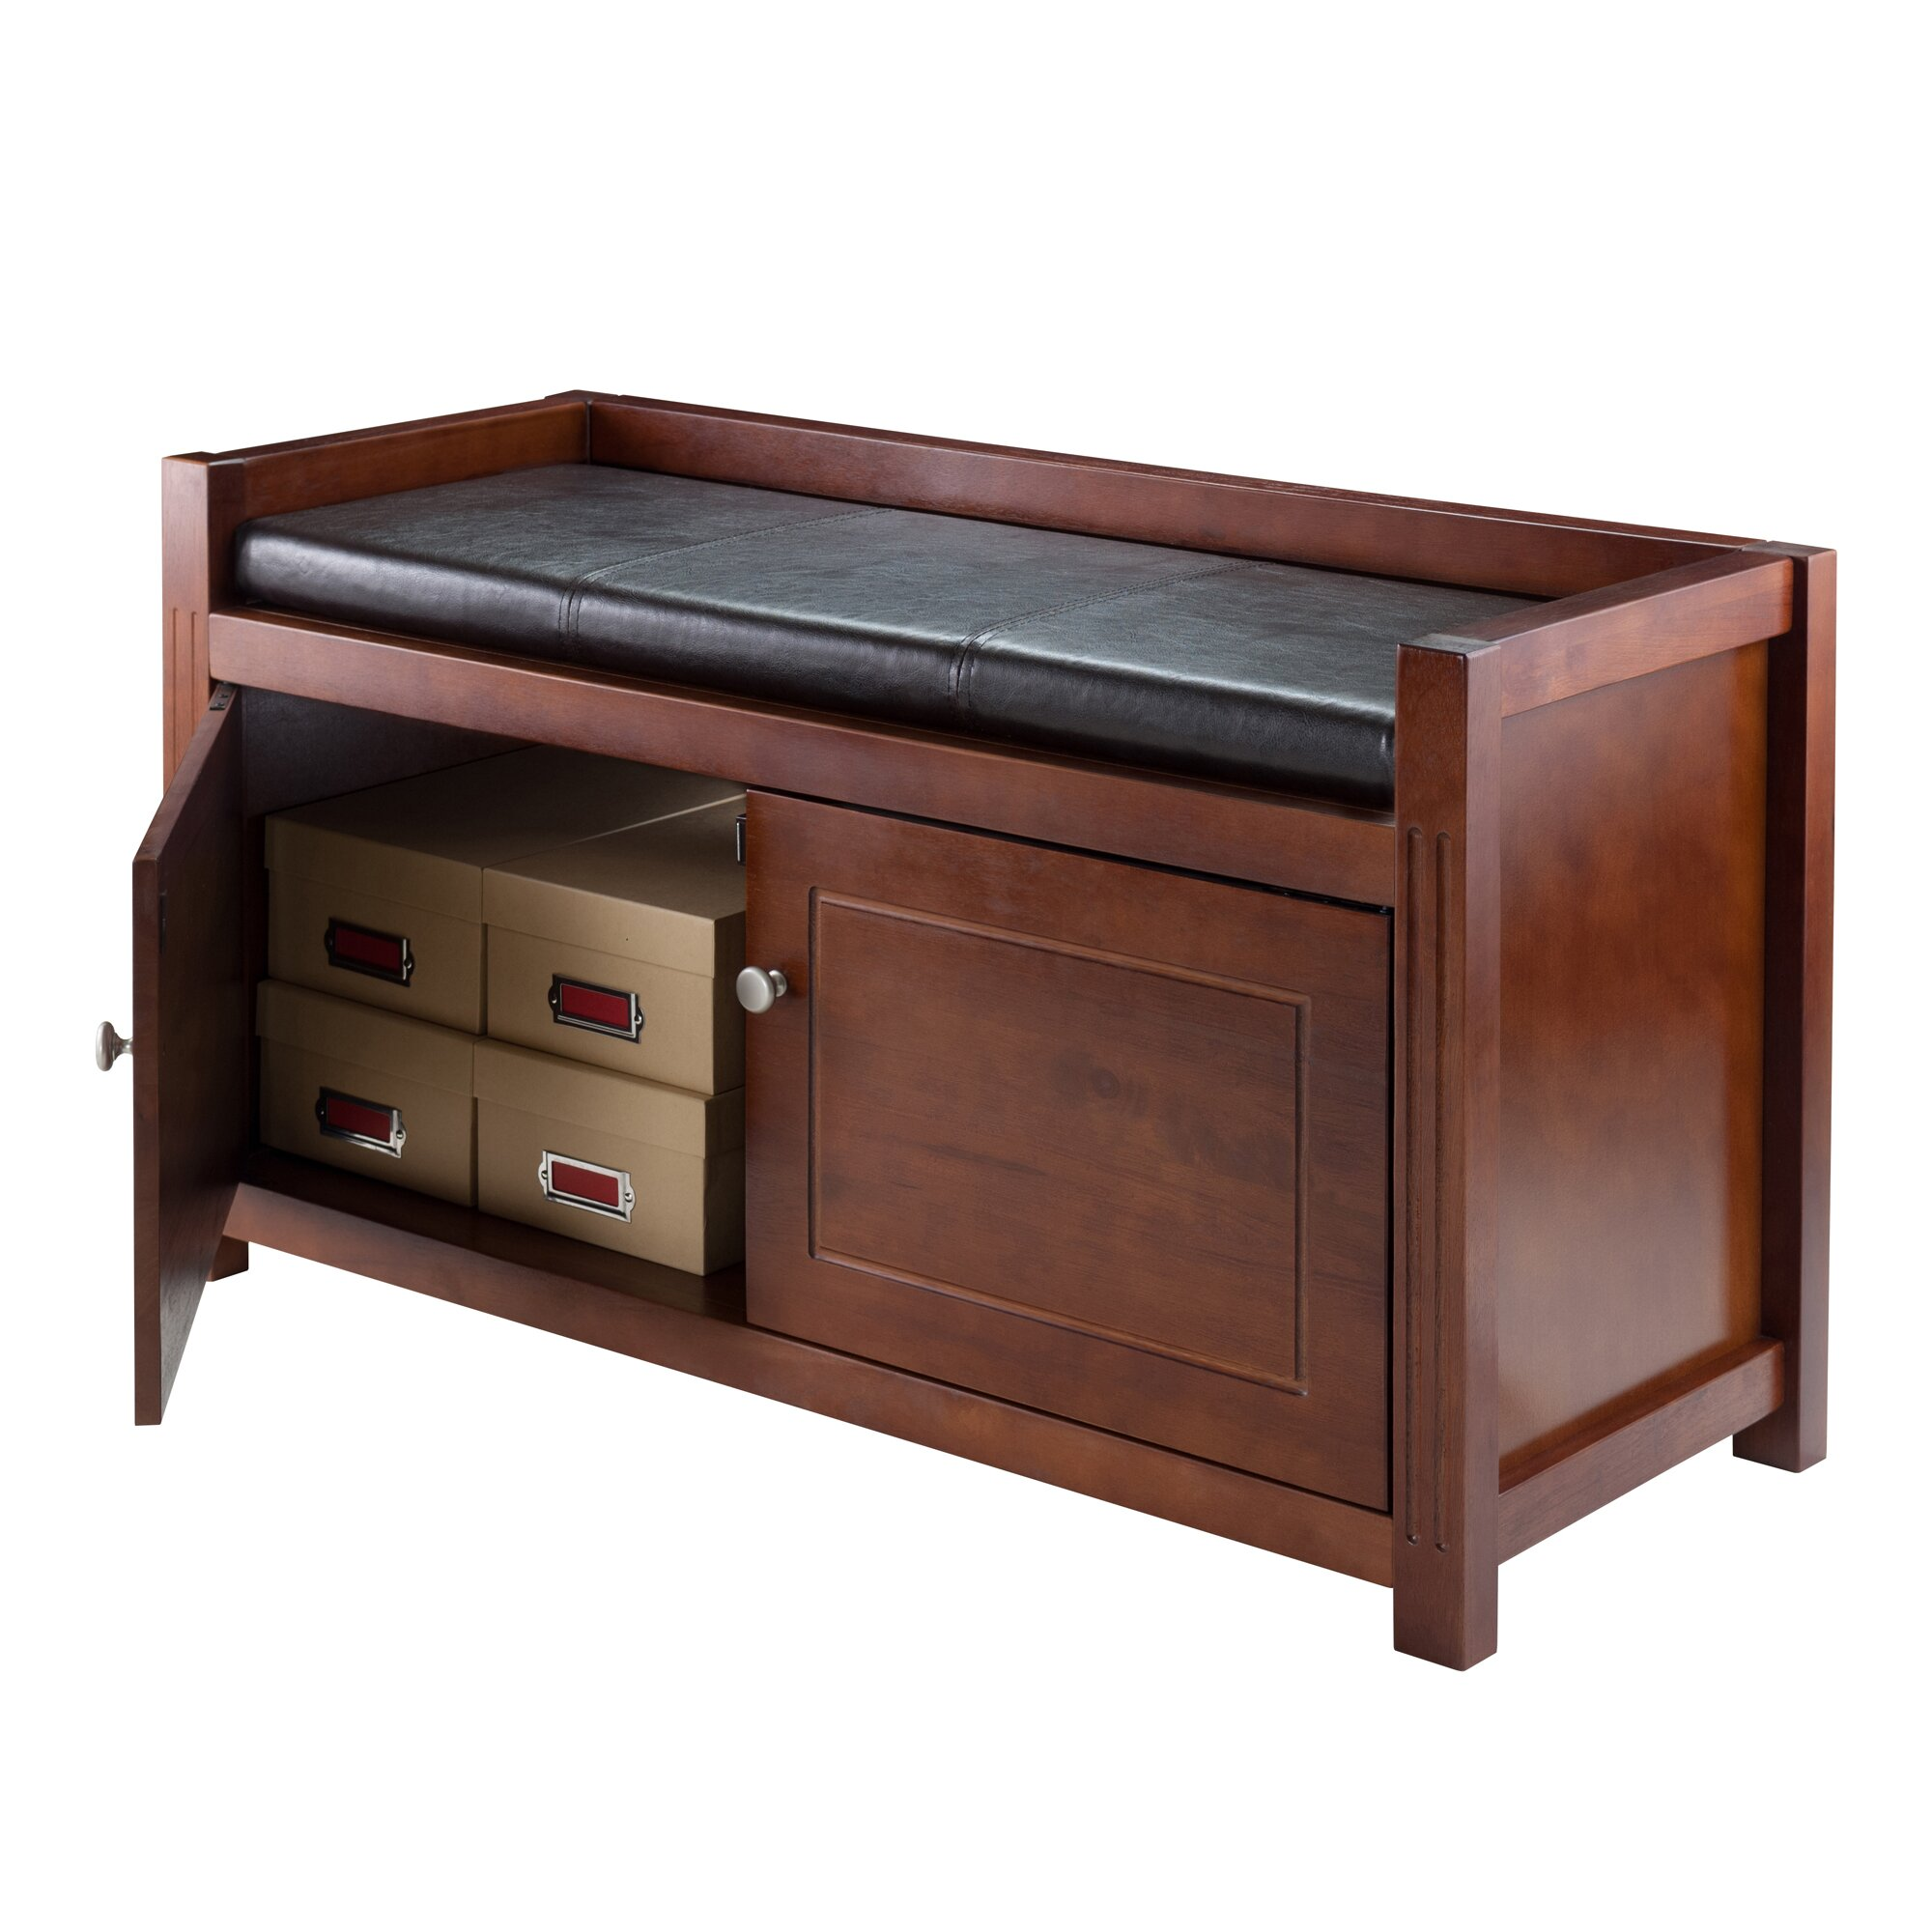 #683E31 Hall Wood Storage Bench By Alcott Hill with 2000x2000 px of Brand New Hall Benches With Storage 20002000 pic @ avoidforclosure.info